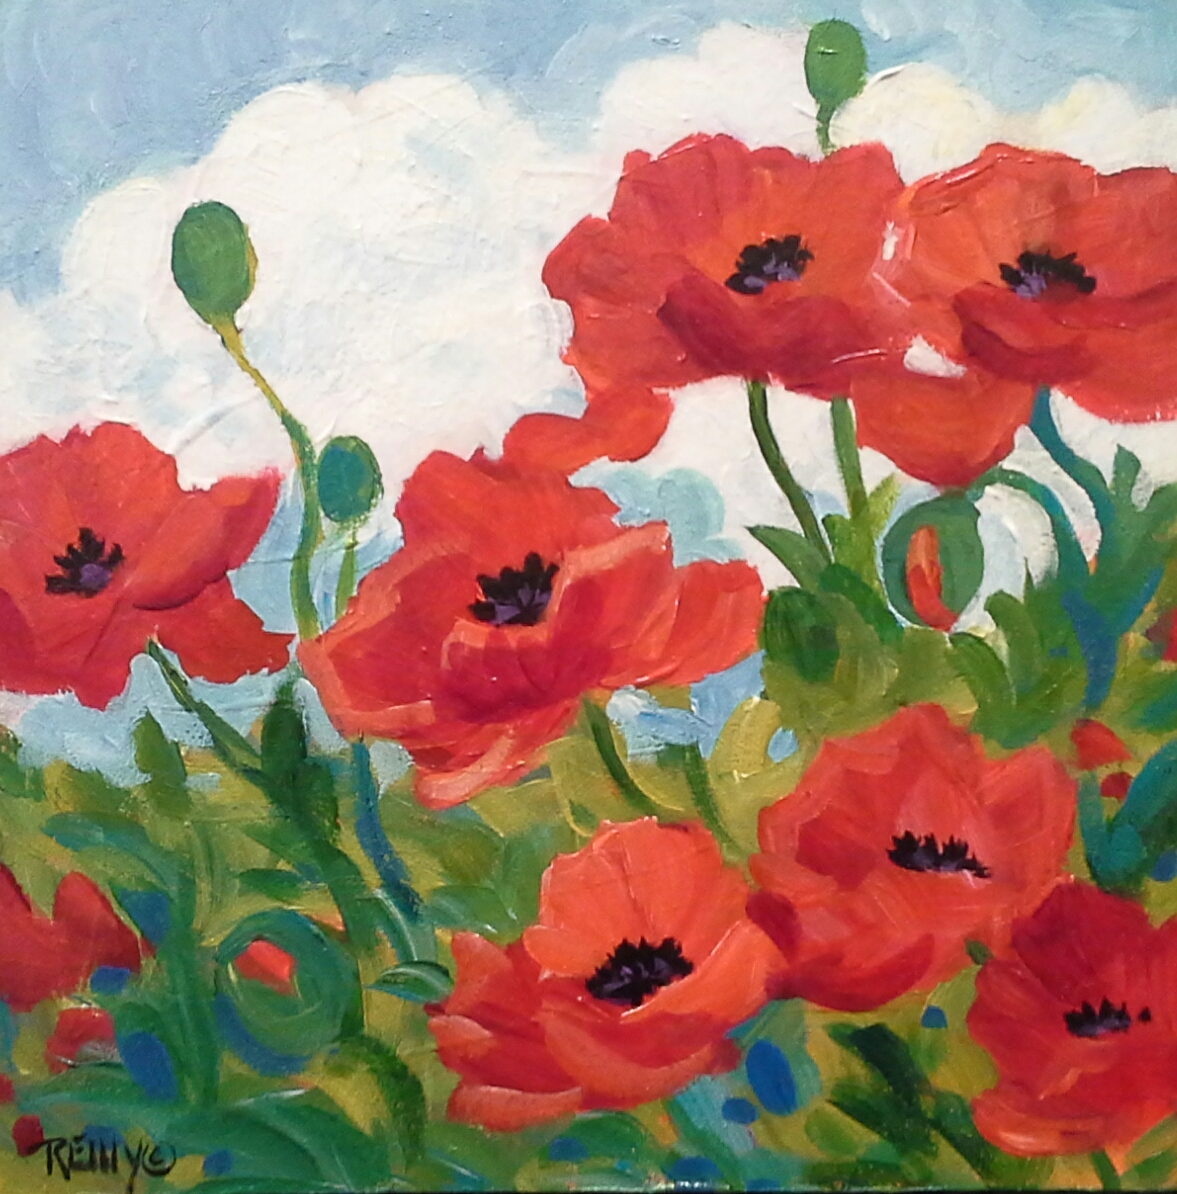 Beginner S Acrylic Painting Colorful Poppy Garden